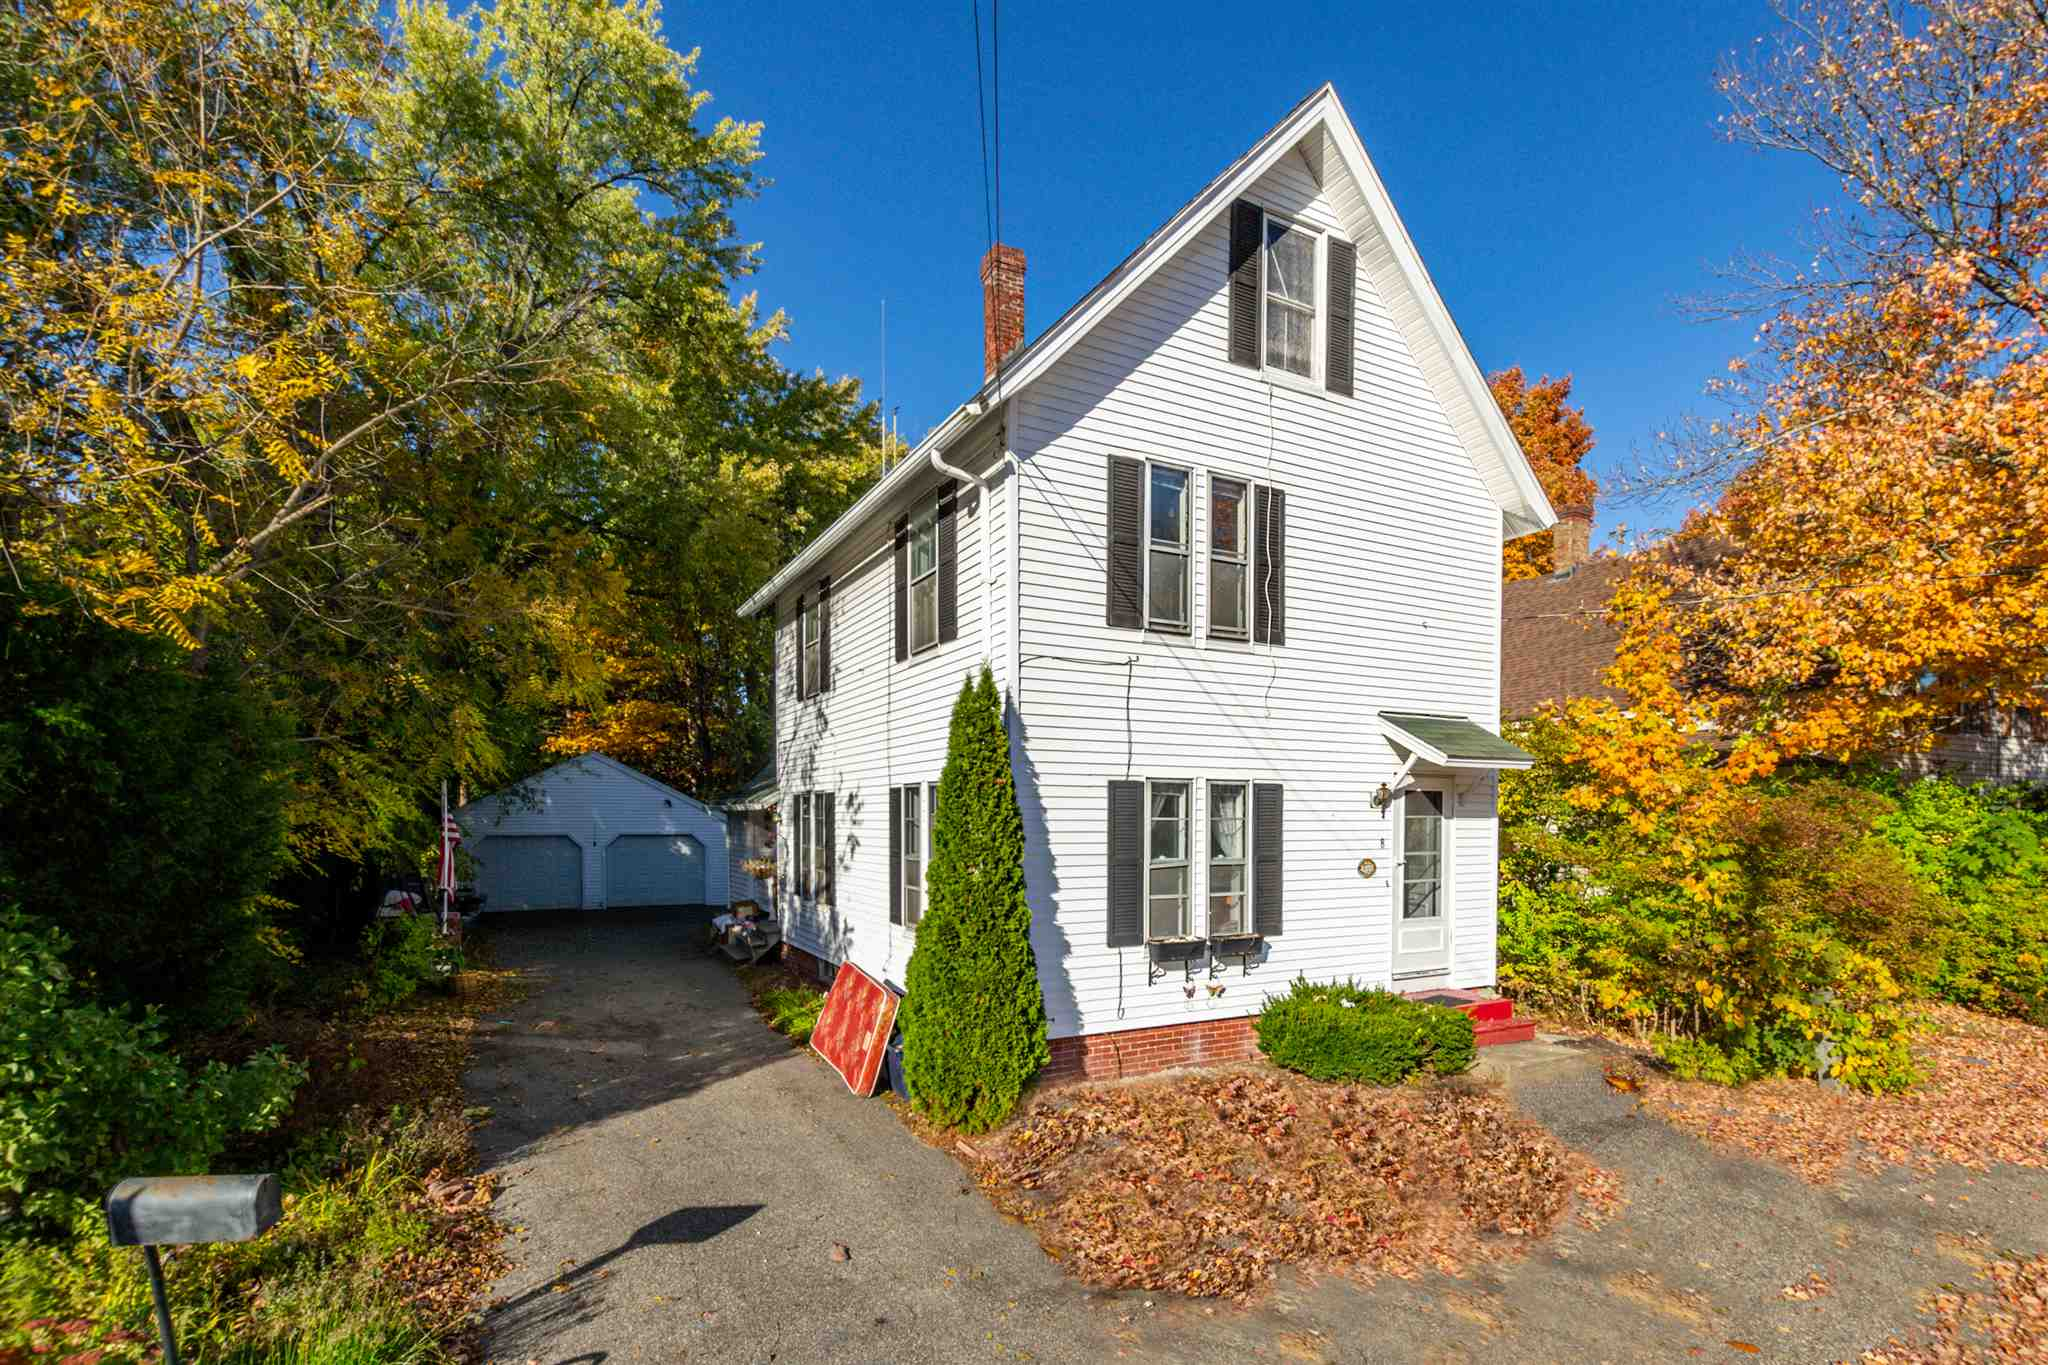 Photo of 8 Green Street Exeter NH 03833